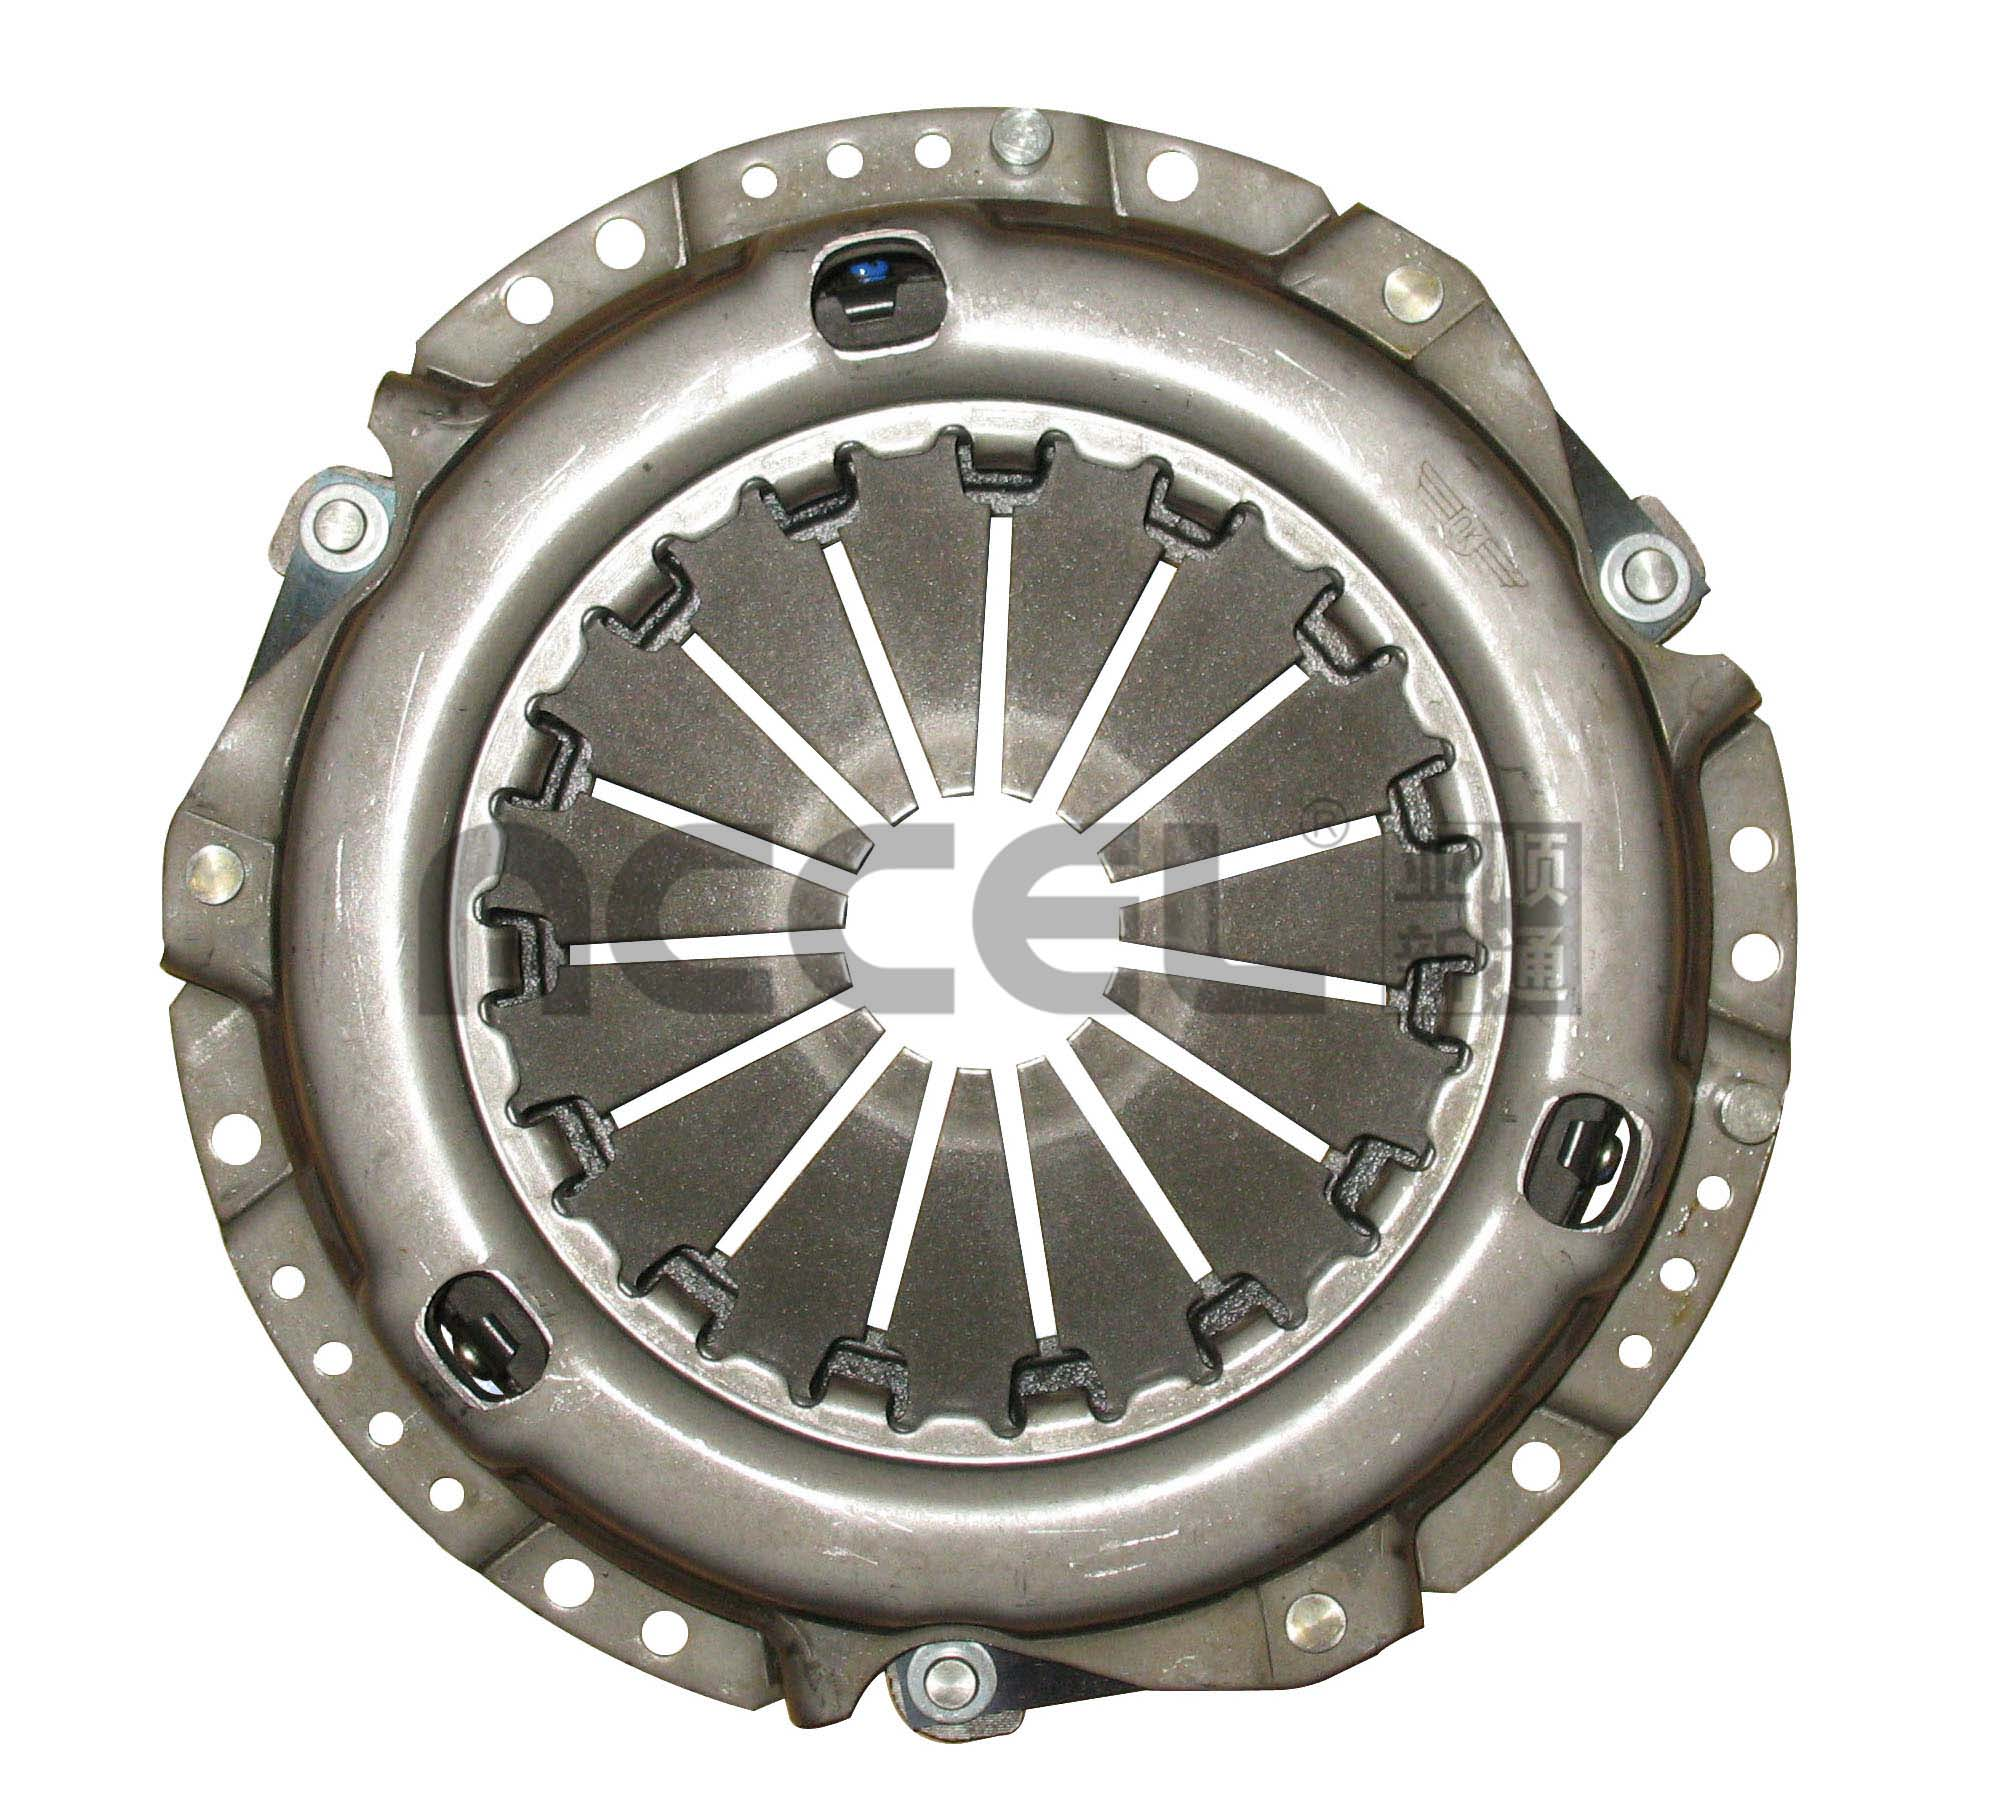 Clutch Cover/OE:31210-26110/236*150*276/CTY-002/TOYOTA/LY107/CT076